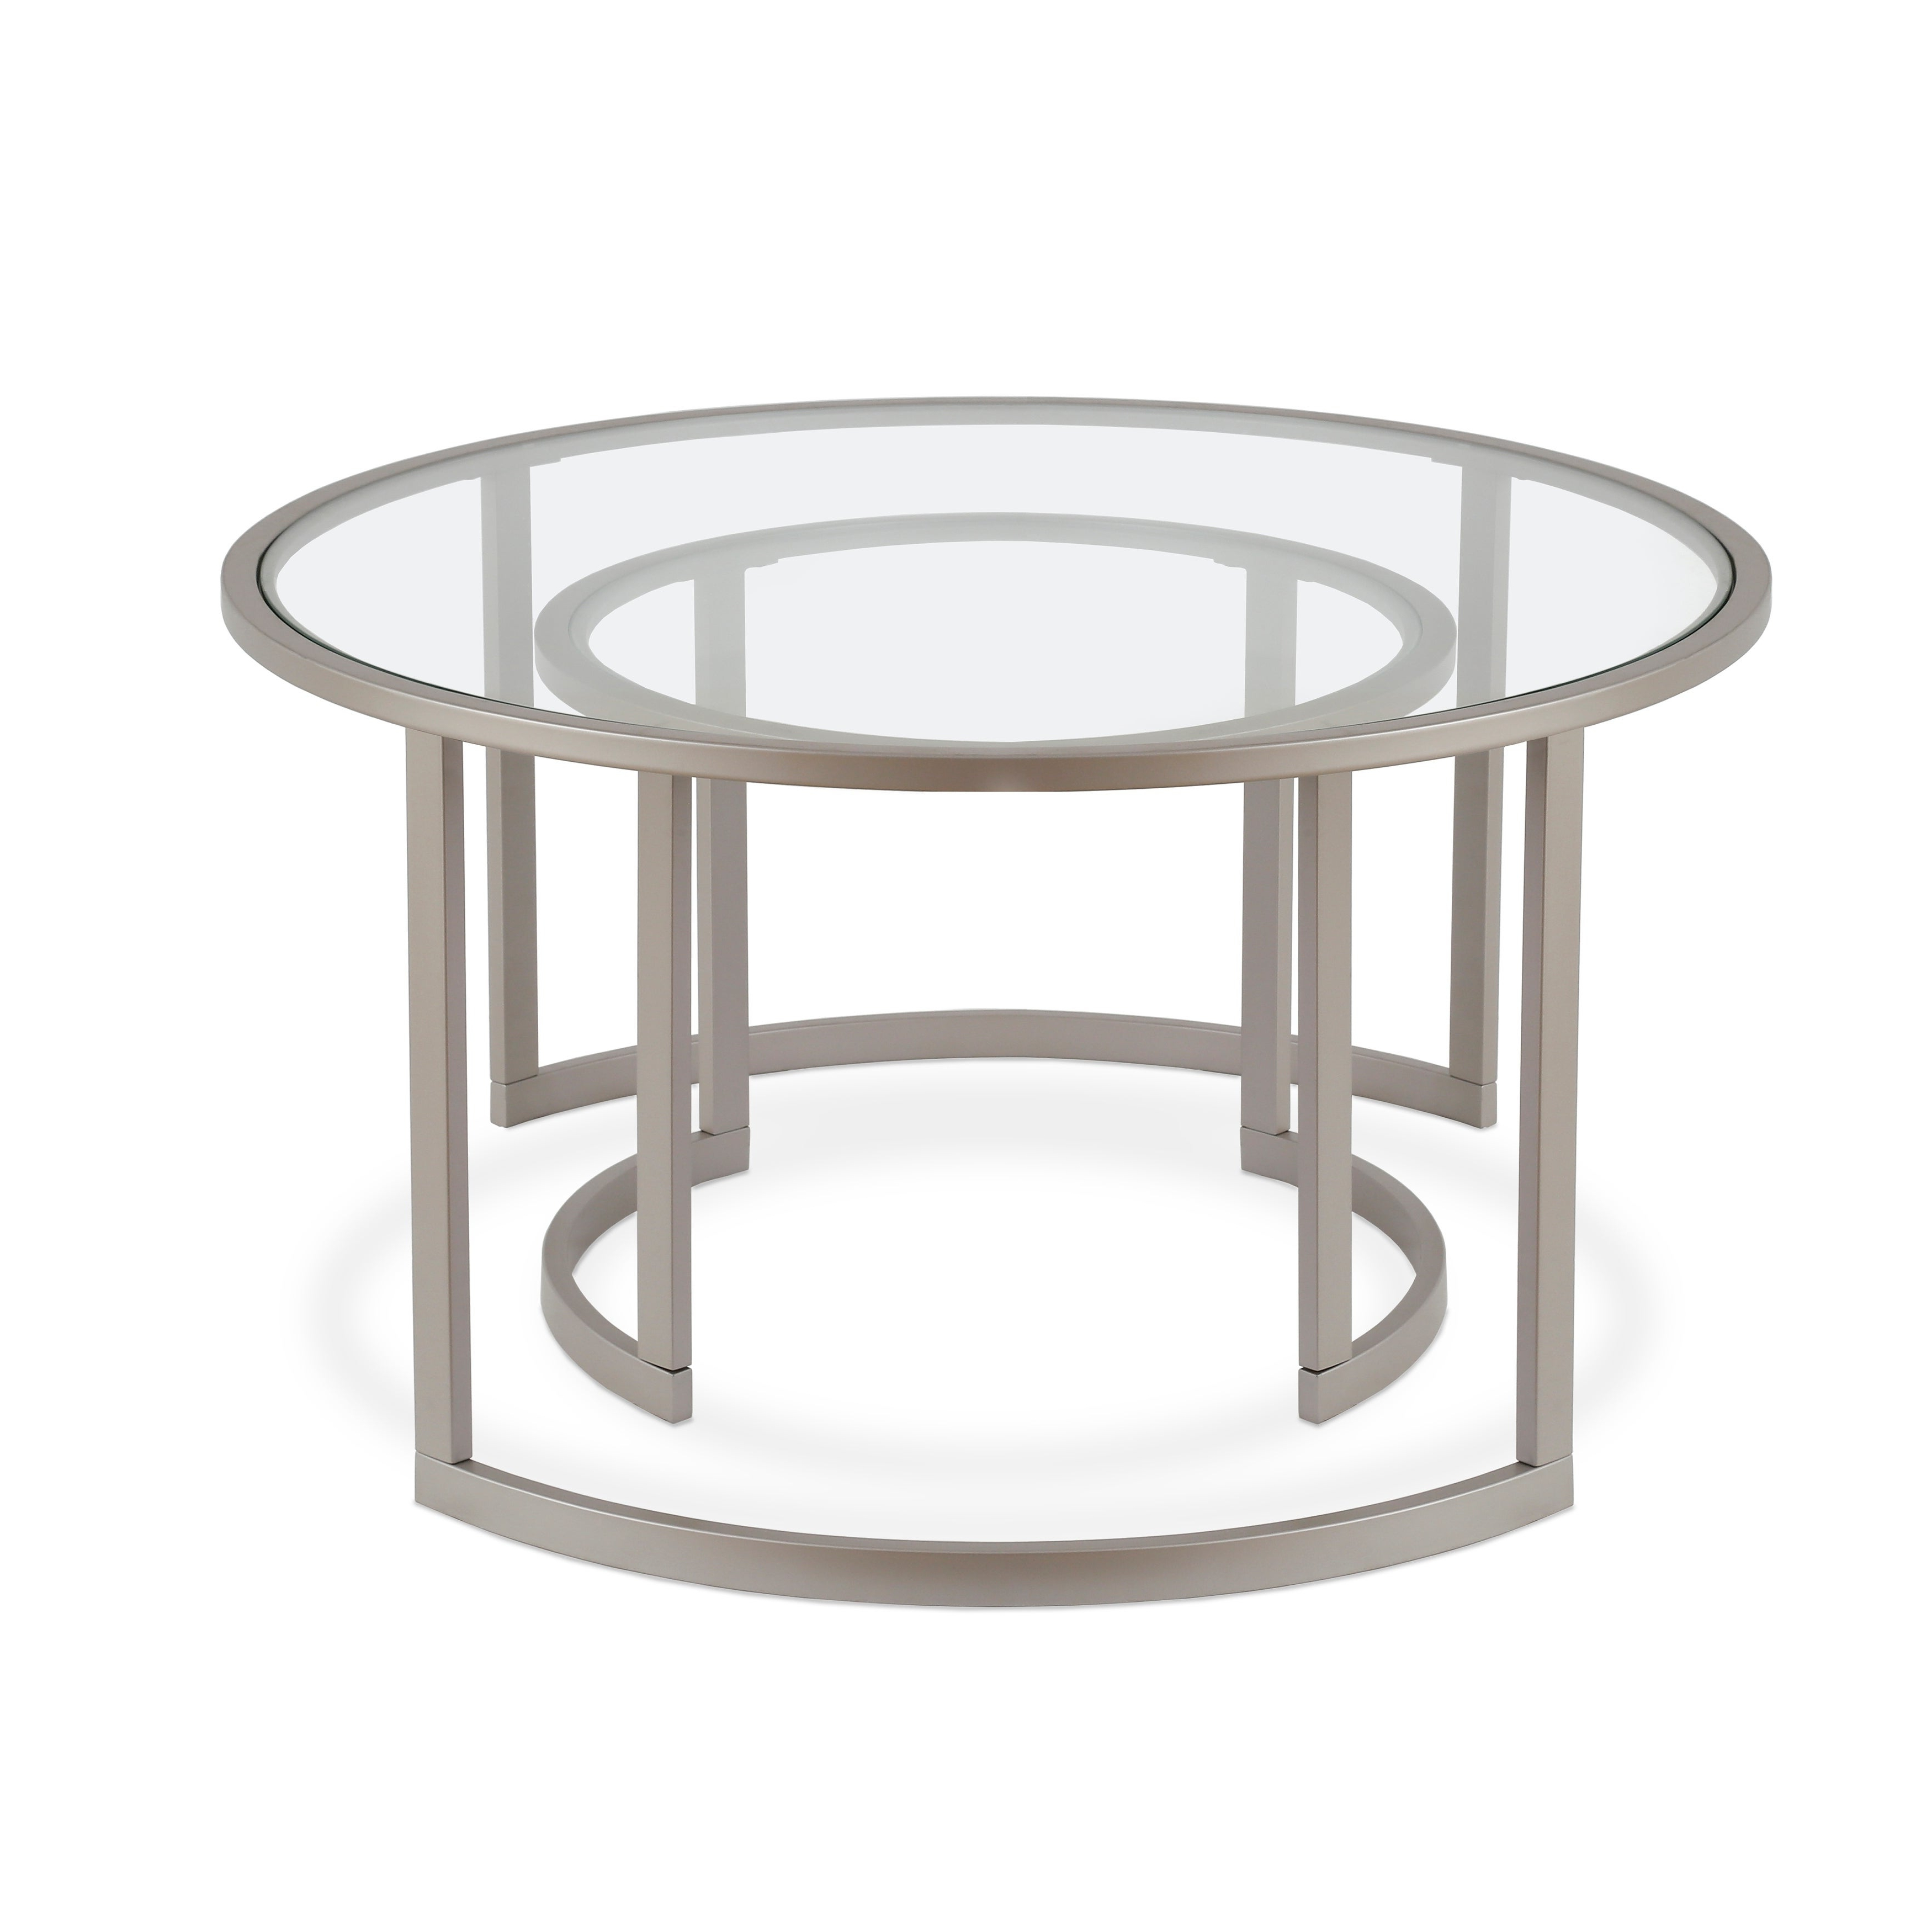 Mitera Round Metal/glass Nesting Coffee Tables Set Of 2 (Optional Finishes) In 2020 Mitera Round Metal Glass Nesting Coffee Tables (View 8 of 20)